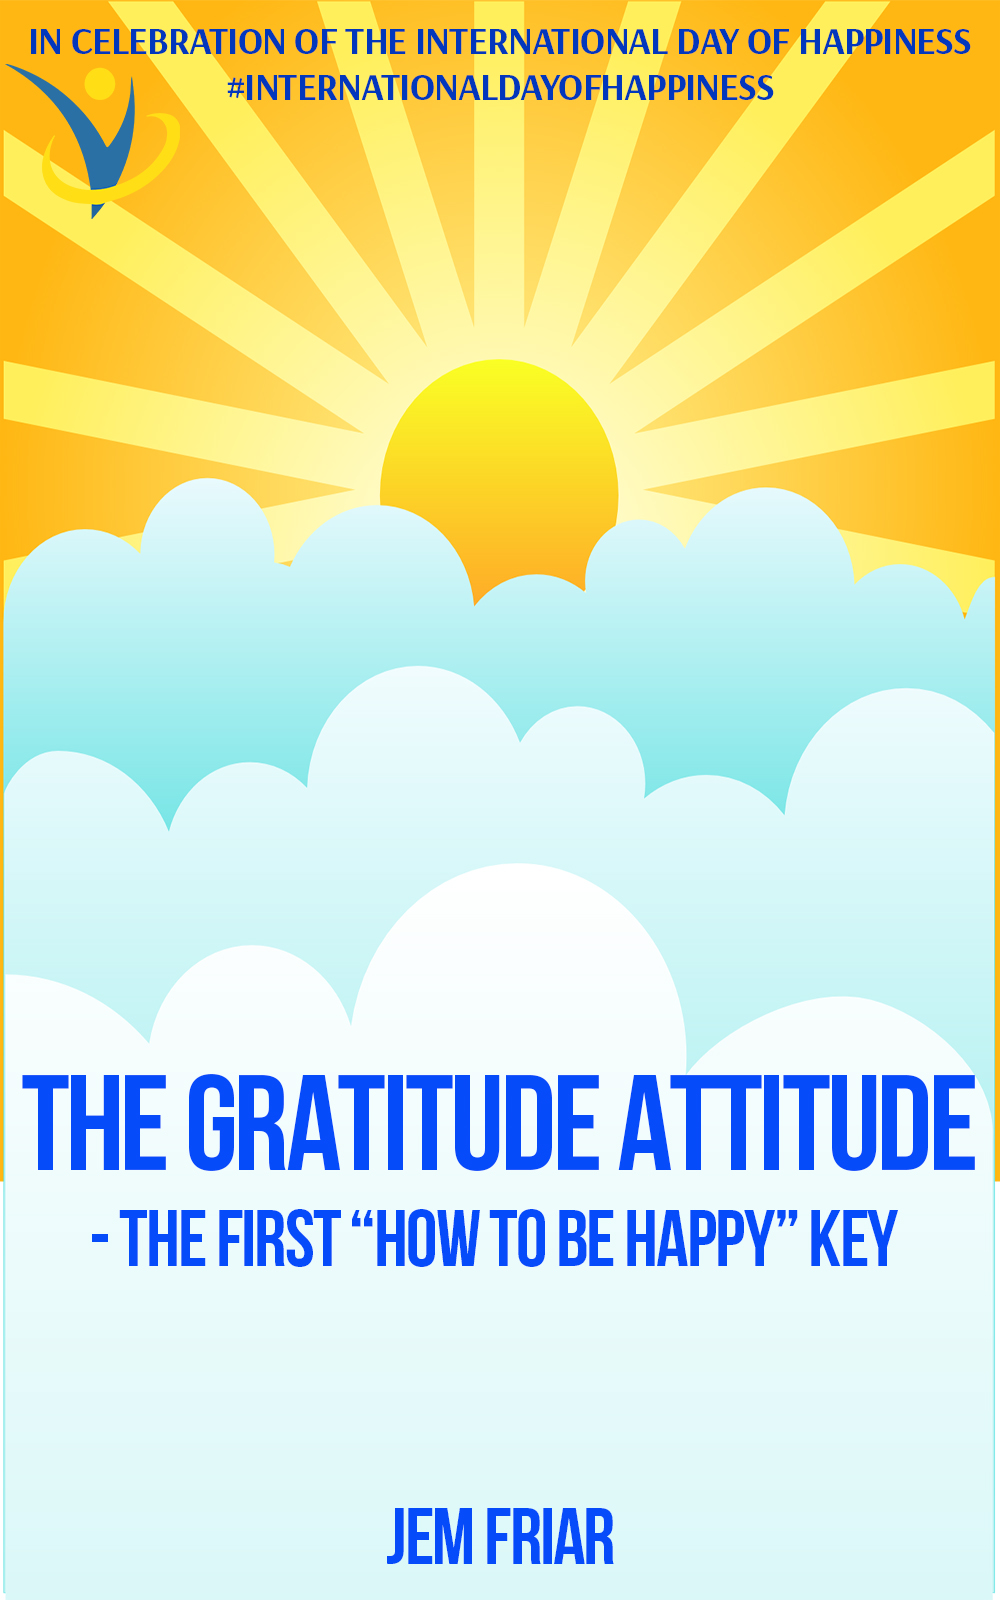 Free Happiness e-book for #internationaldayofhappiness